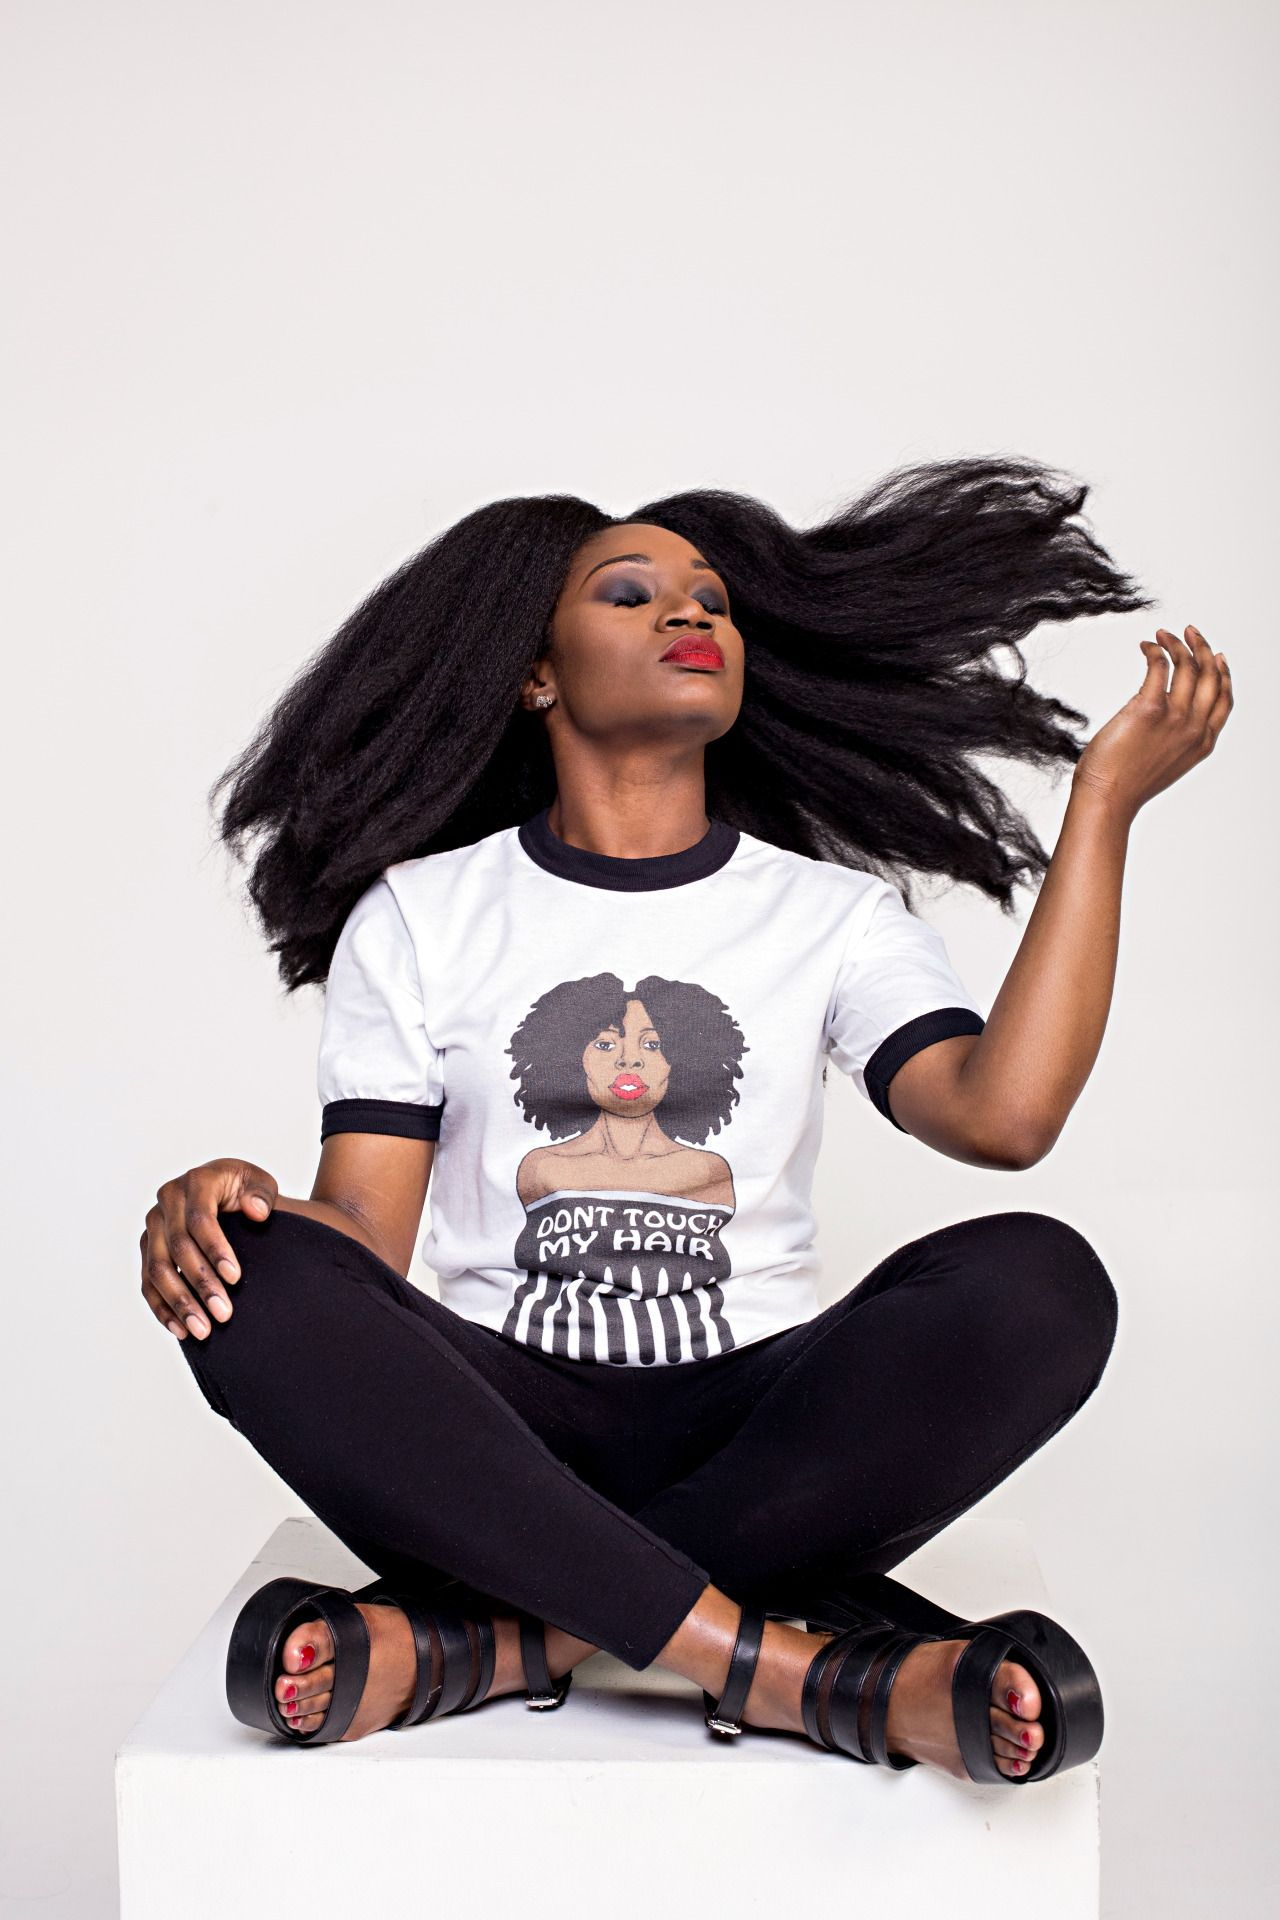 """naturalblkgirlsrock:  """"Don't Touch My Hair"""" tee fromAfriTribe""""Modern Nubian"""" 4 piece Capsule Collection. Modeled byElaineAfrika Follow@AfriTribeon IG/Twitter for more info (afritribeshop.com) Created by@kanmiwest"""